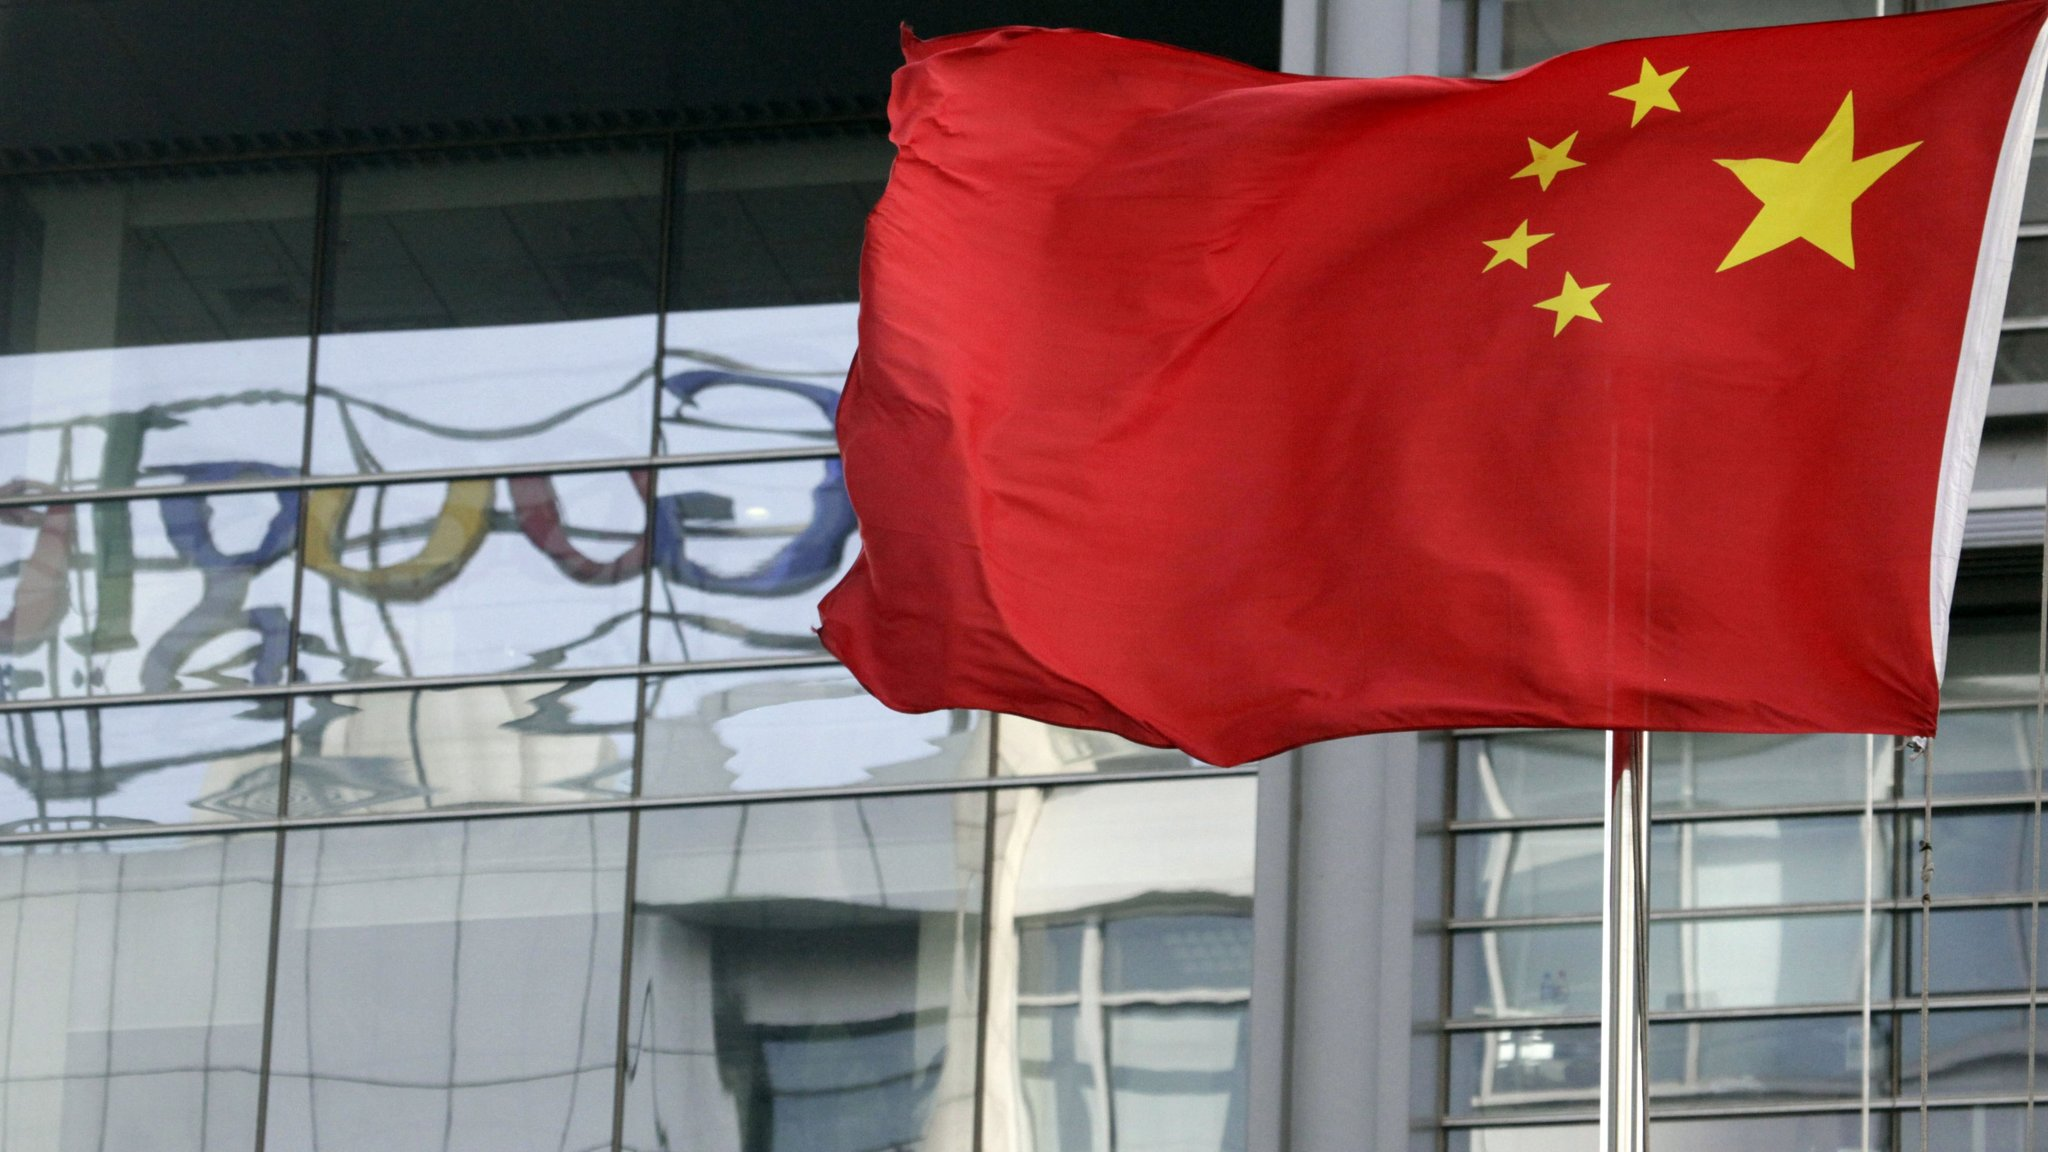 China disrupts web access for global groups as censorship bites